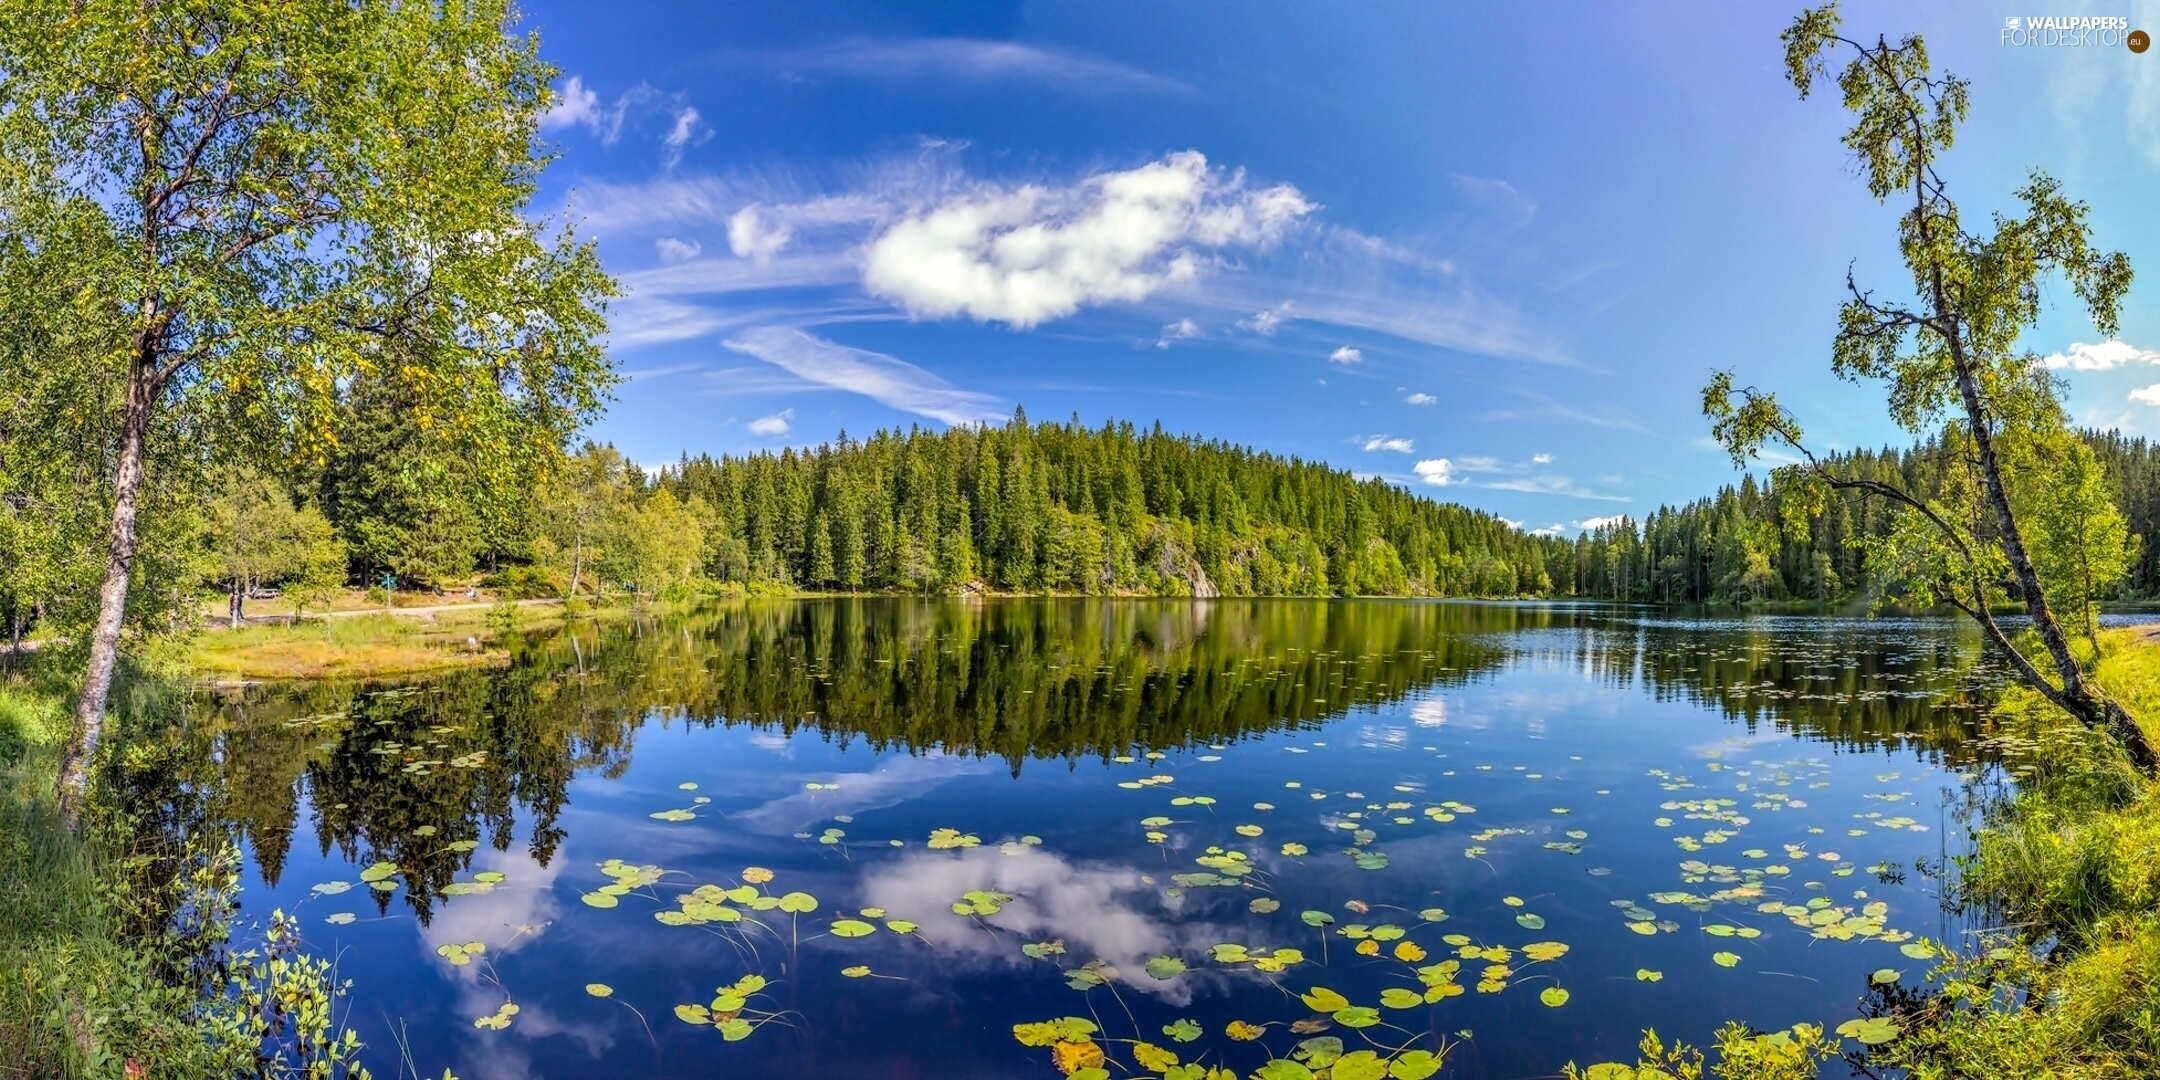 Norway, lake, forest - For desktop wallpapers: 2160x1080